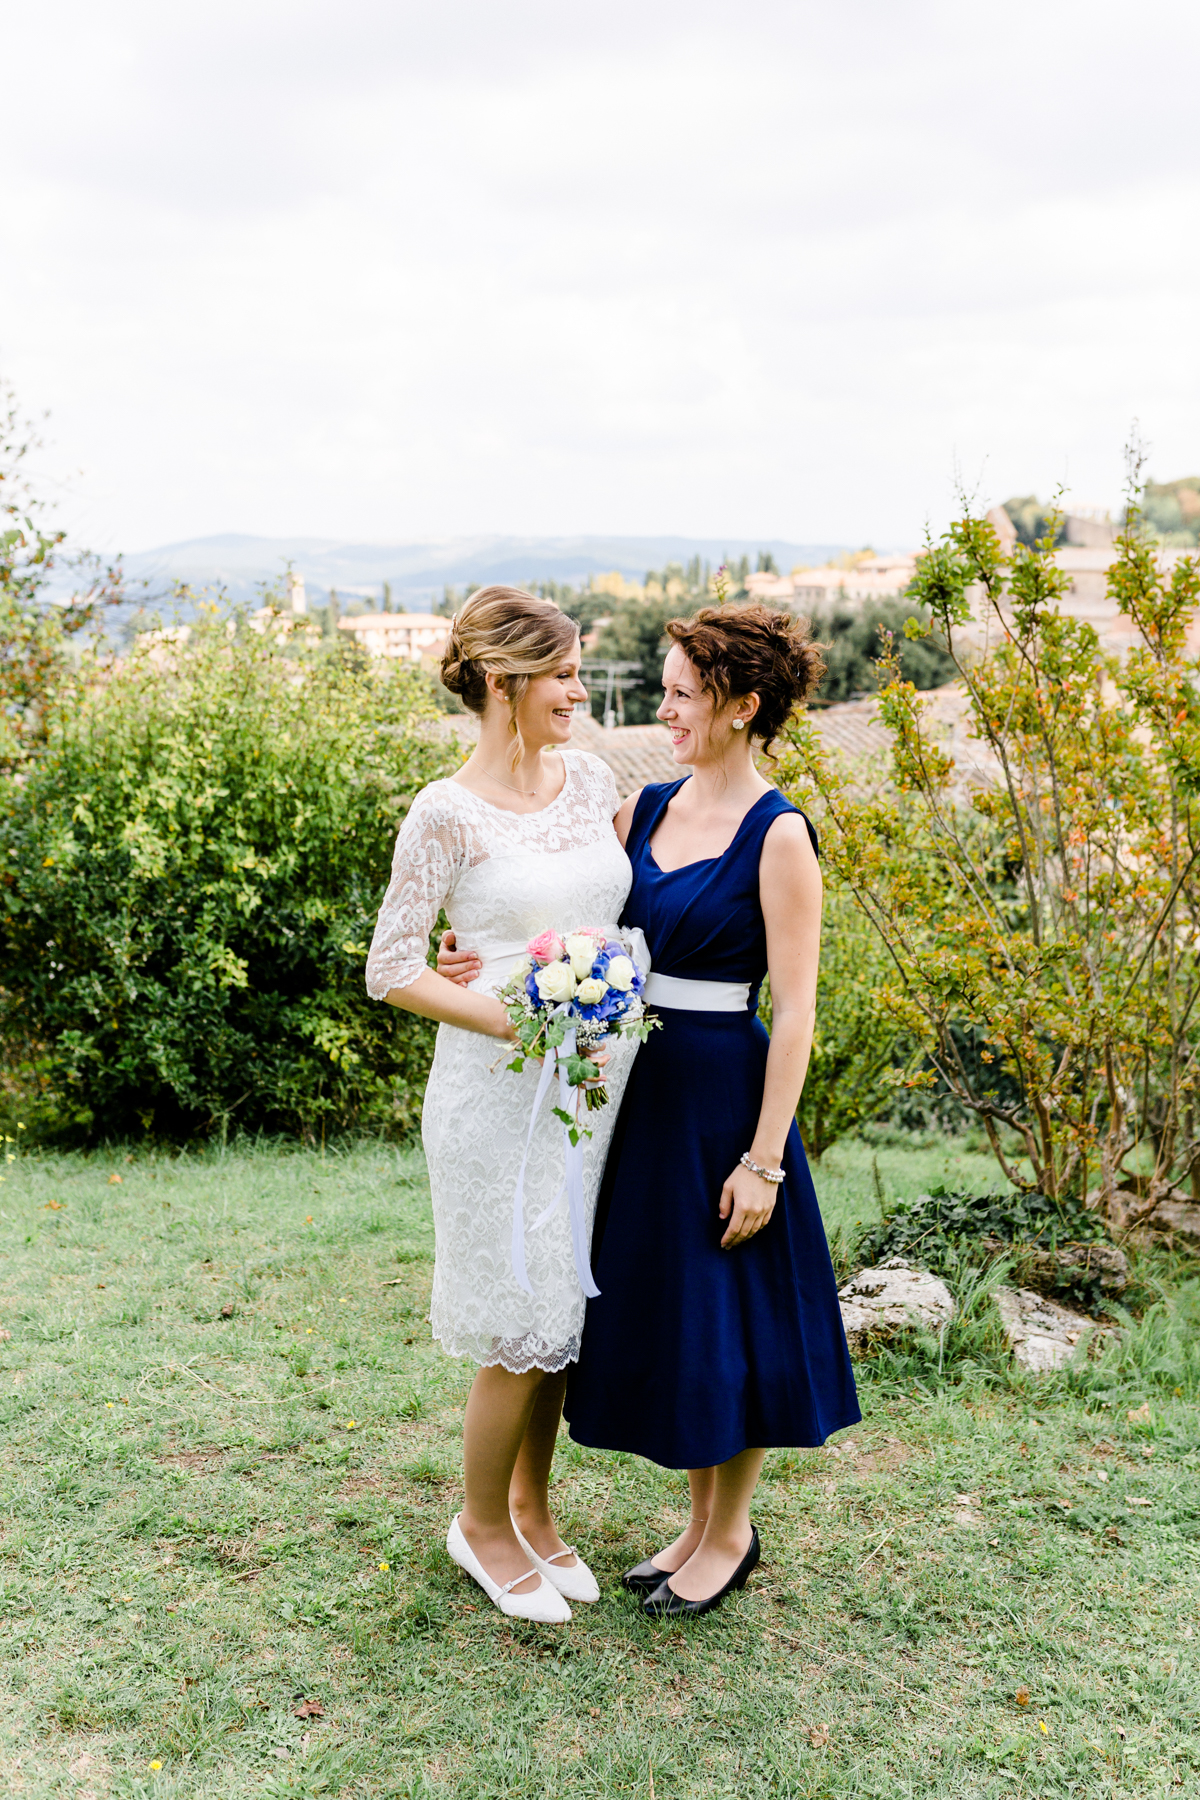 Romy_Alfons_Destination_Wedding_Tuscany_Toskana_Italy_me_him_photography-320